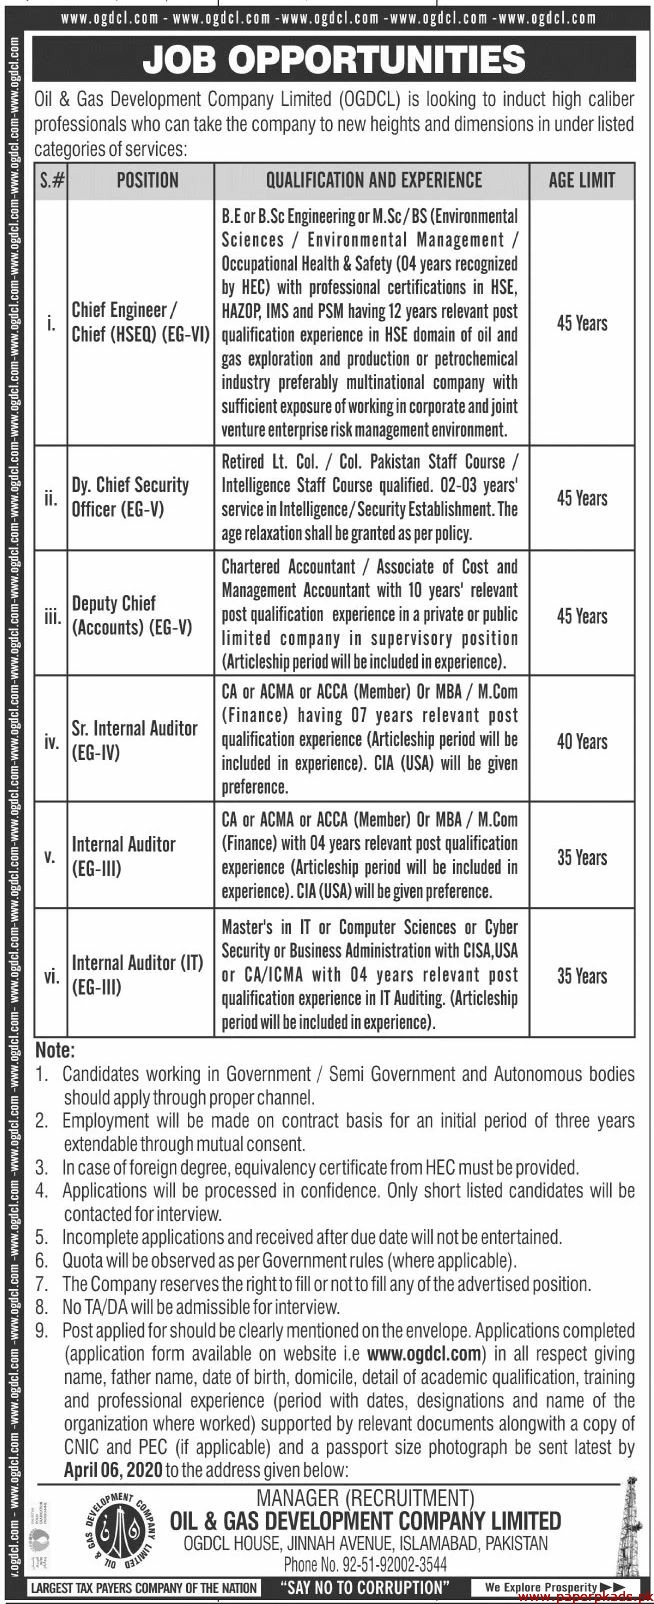 Oil & Gas Development Company Limited Jobs 2020